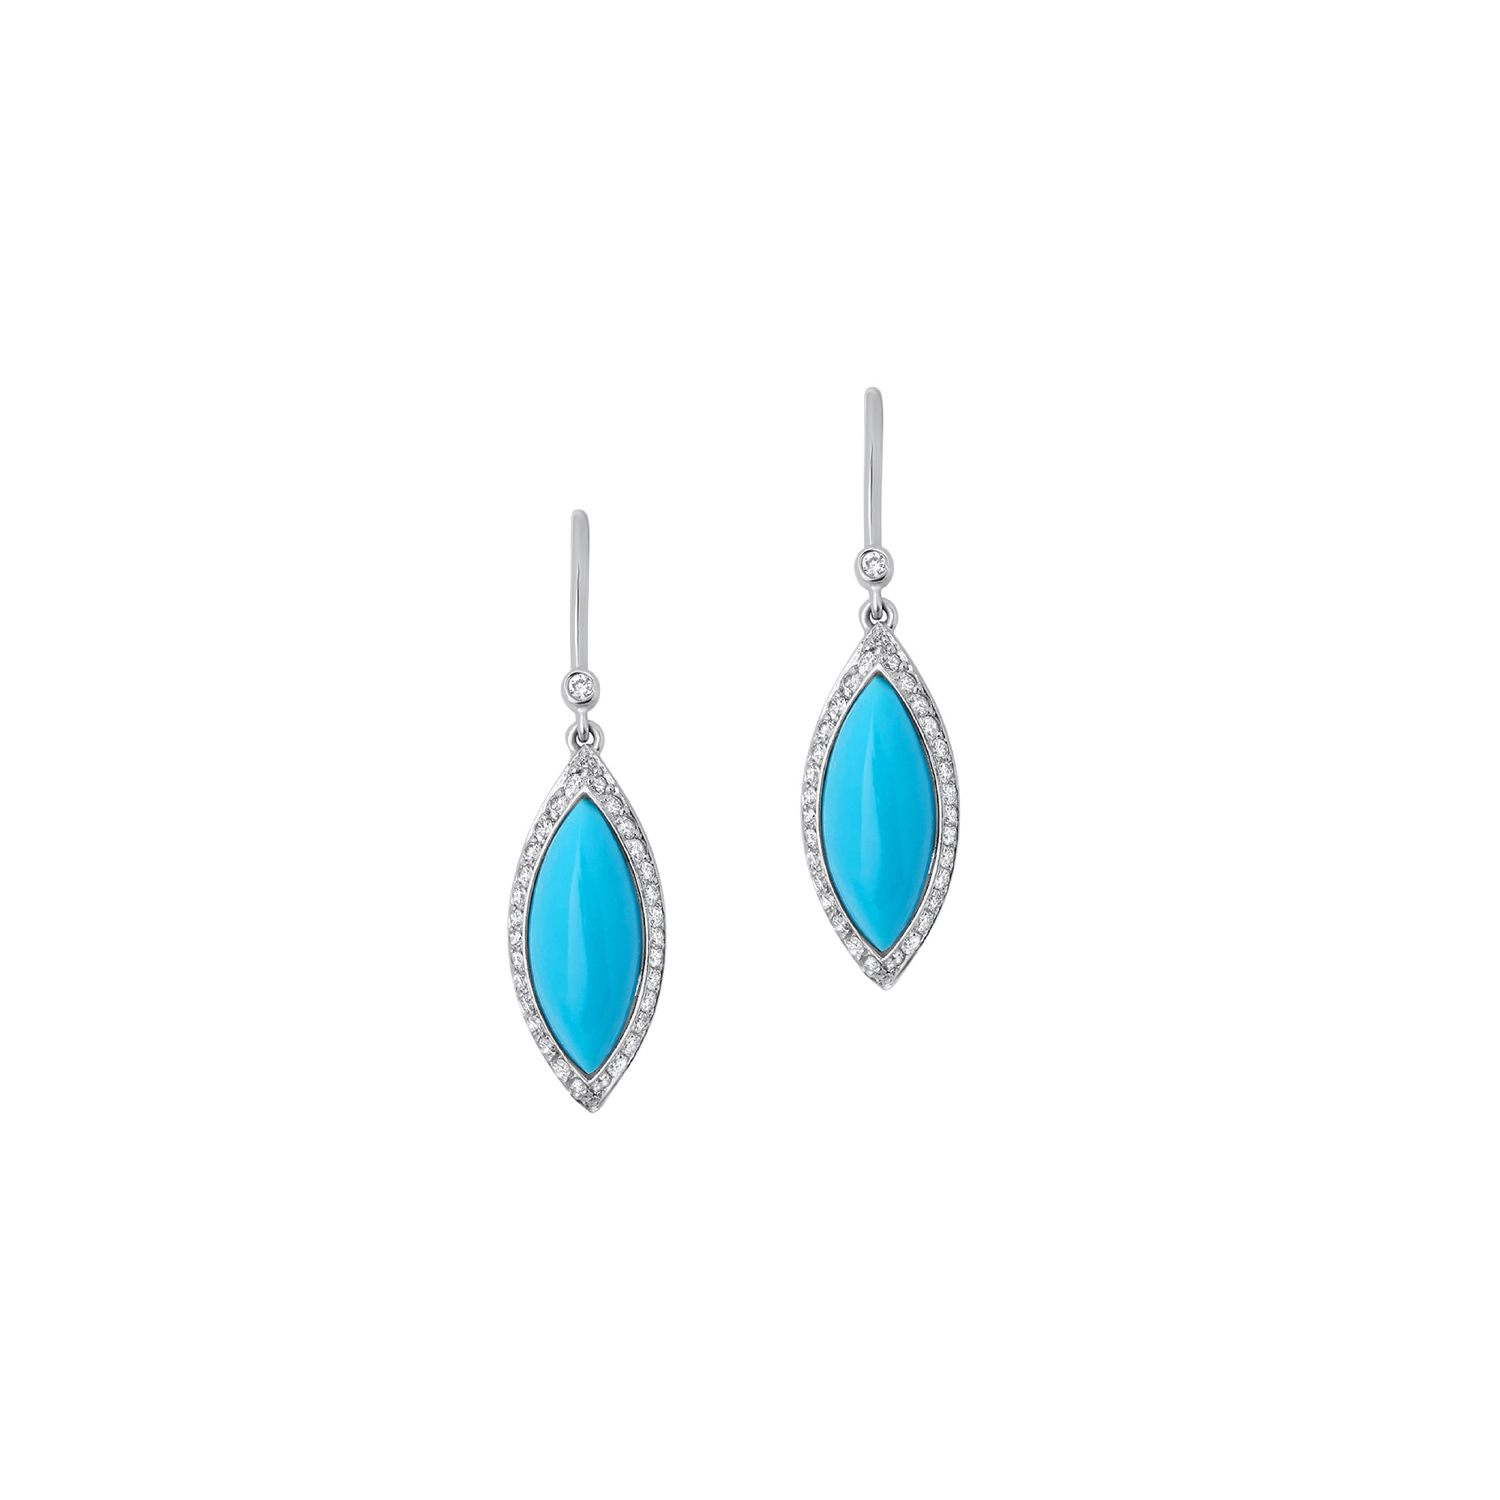 Turquoise And Diamond Drop Earrings G2367